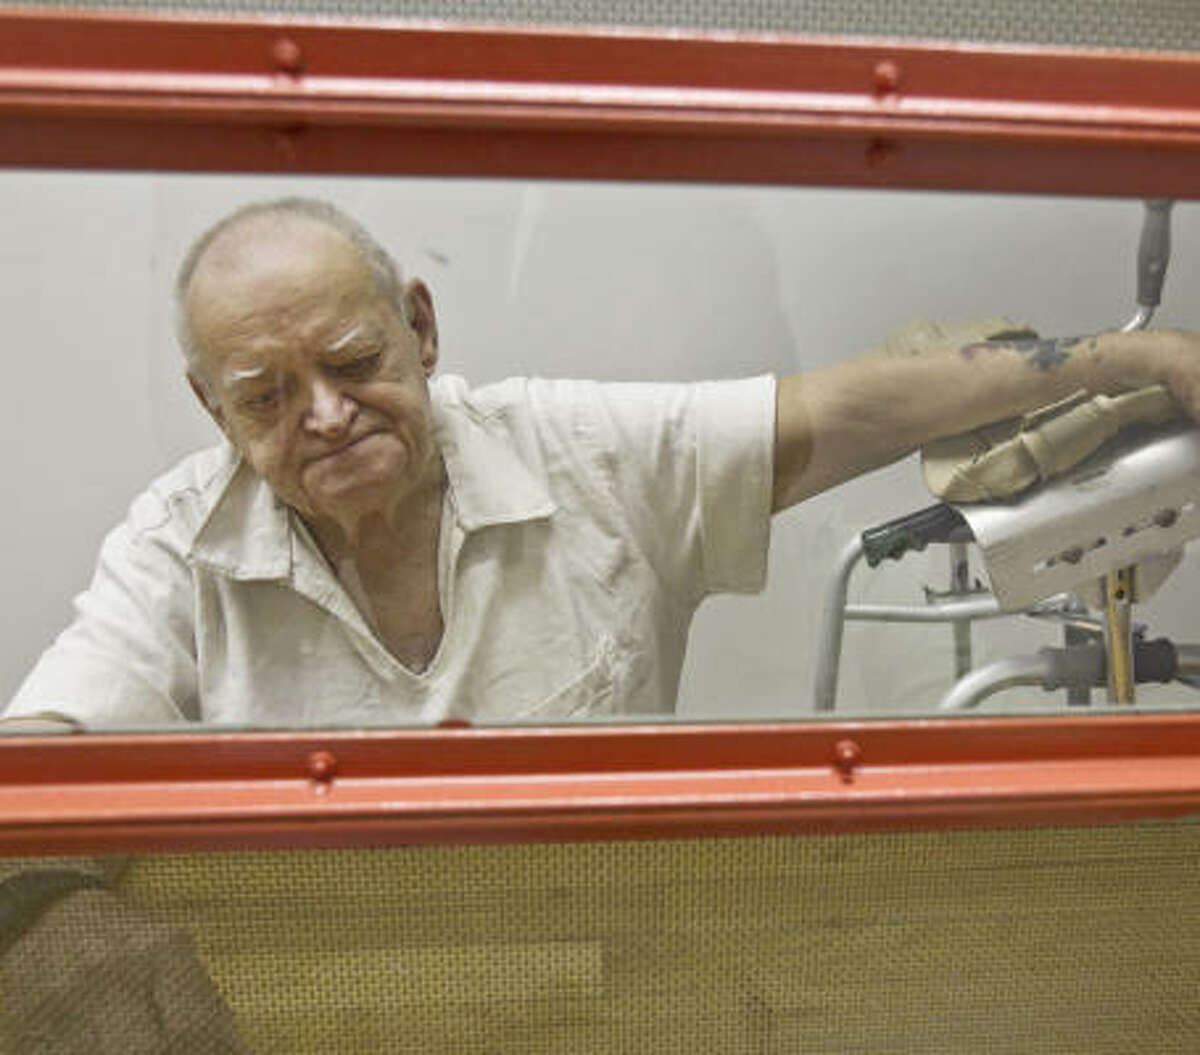 Raymond Palen, 79, is serving 20 years for sexual assault at the Texas Department of Criminal Justice Estelle Unit in Huntsville. He uses a walker and has diabetes and arthritis.